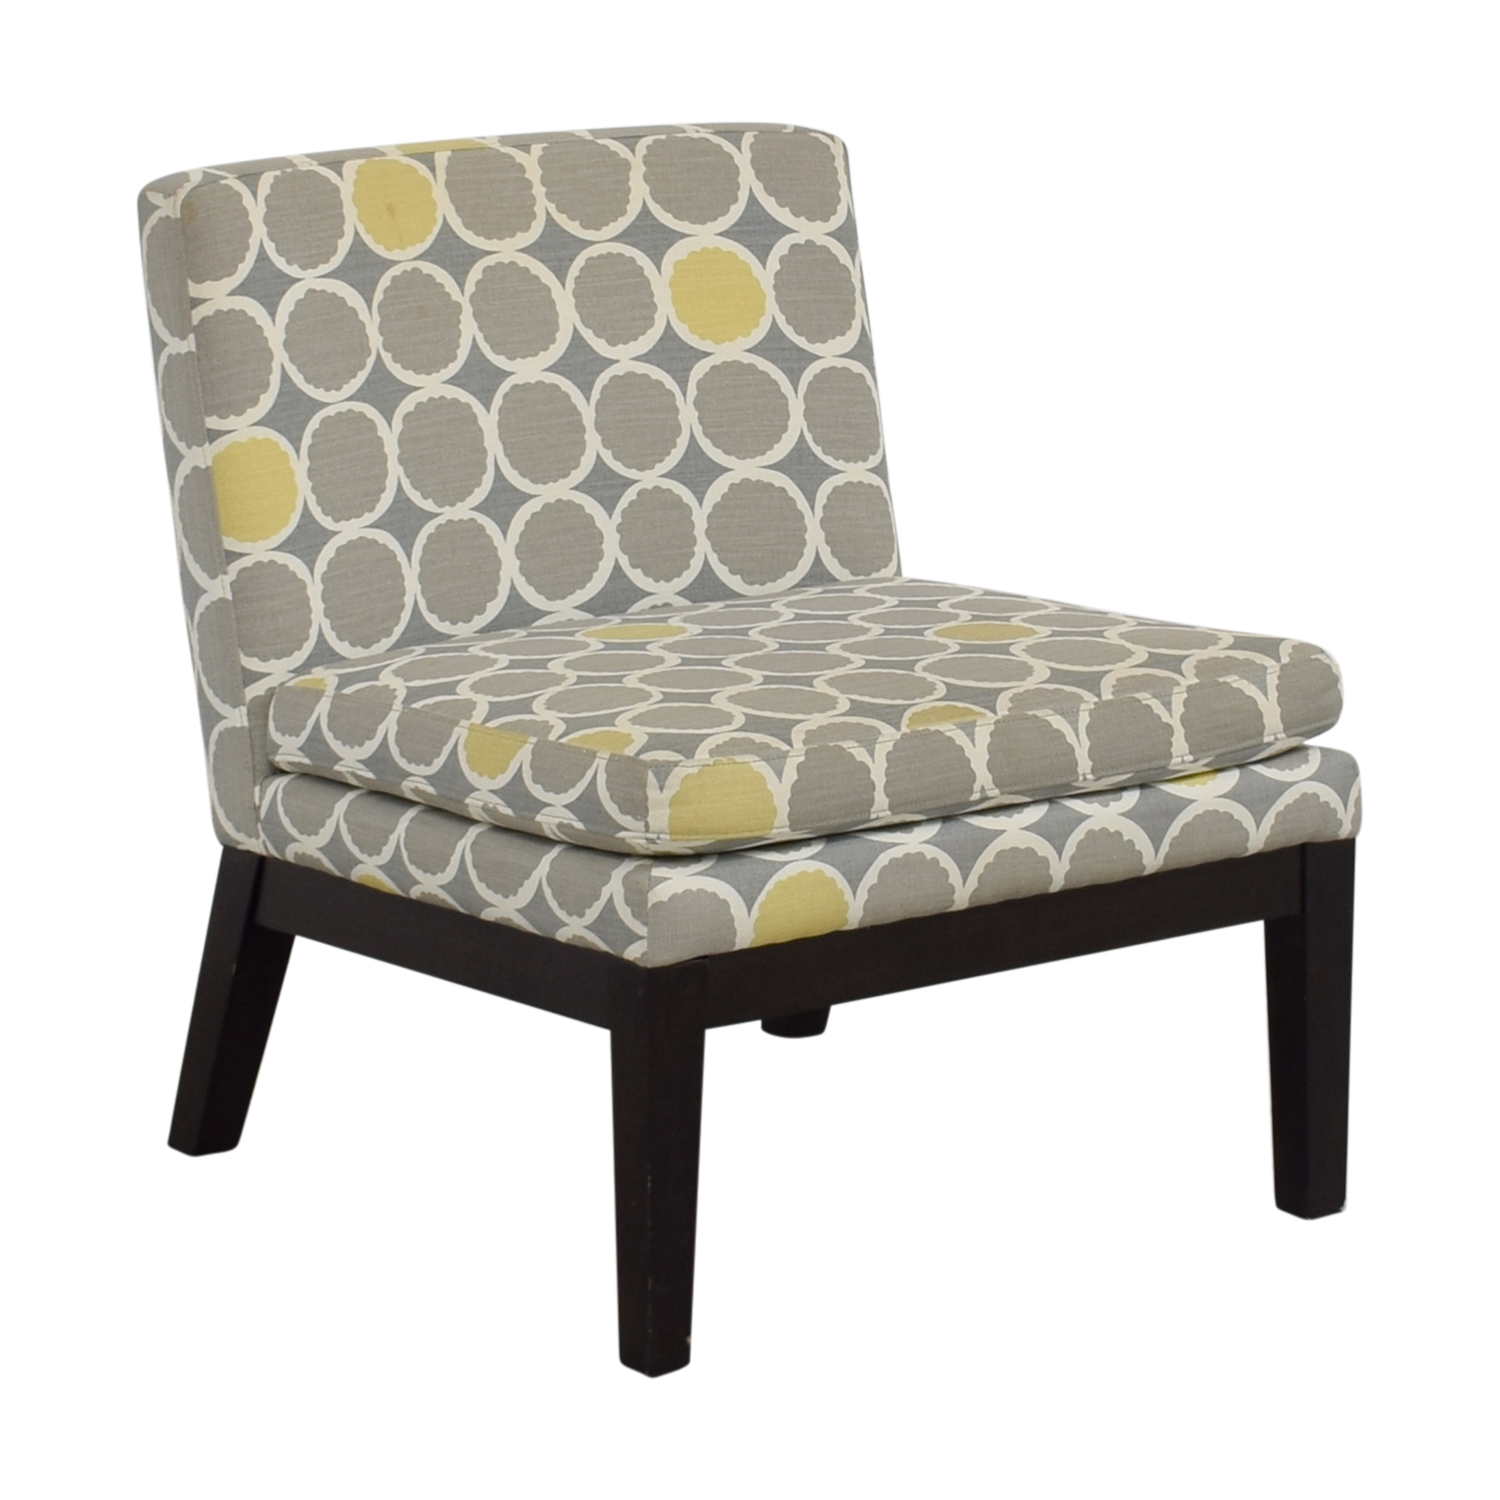 72% OFF - West Elm West Elm Grey Yellow and White Accent ...